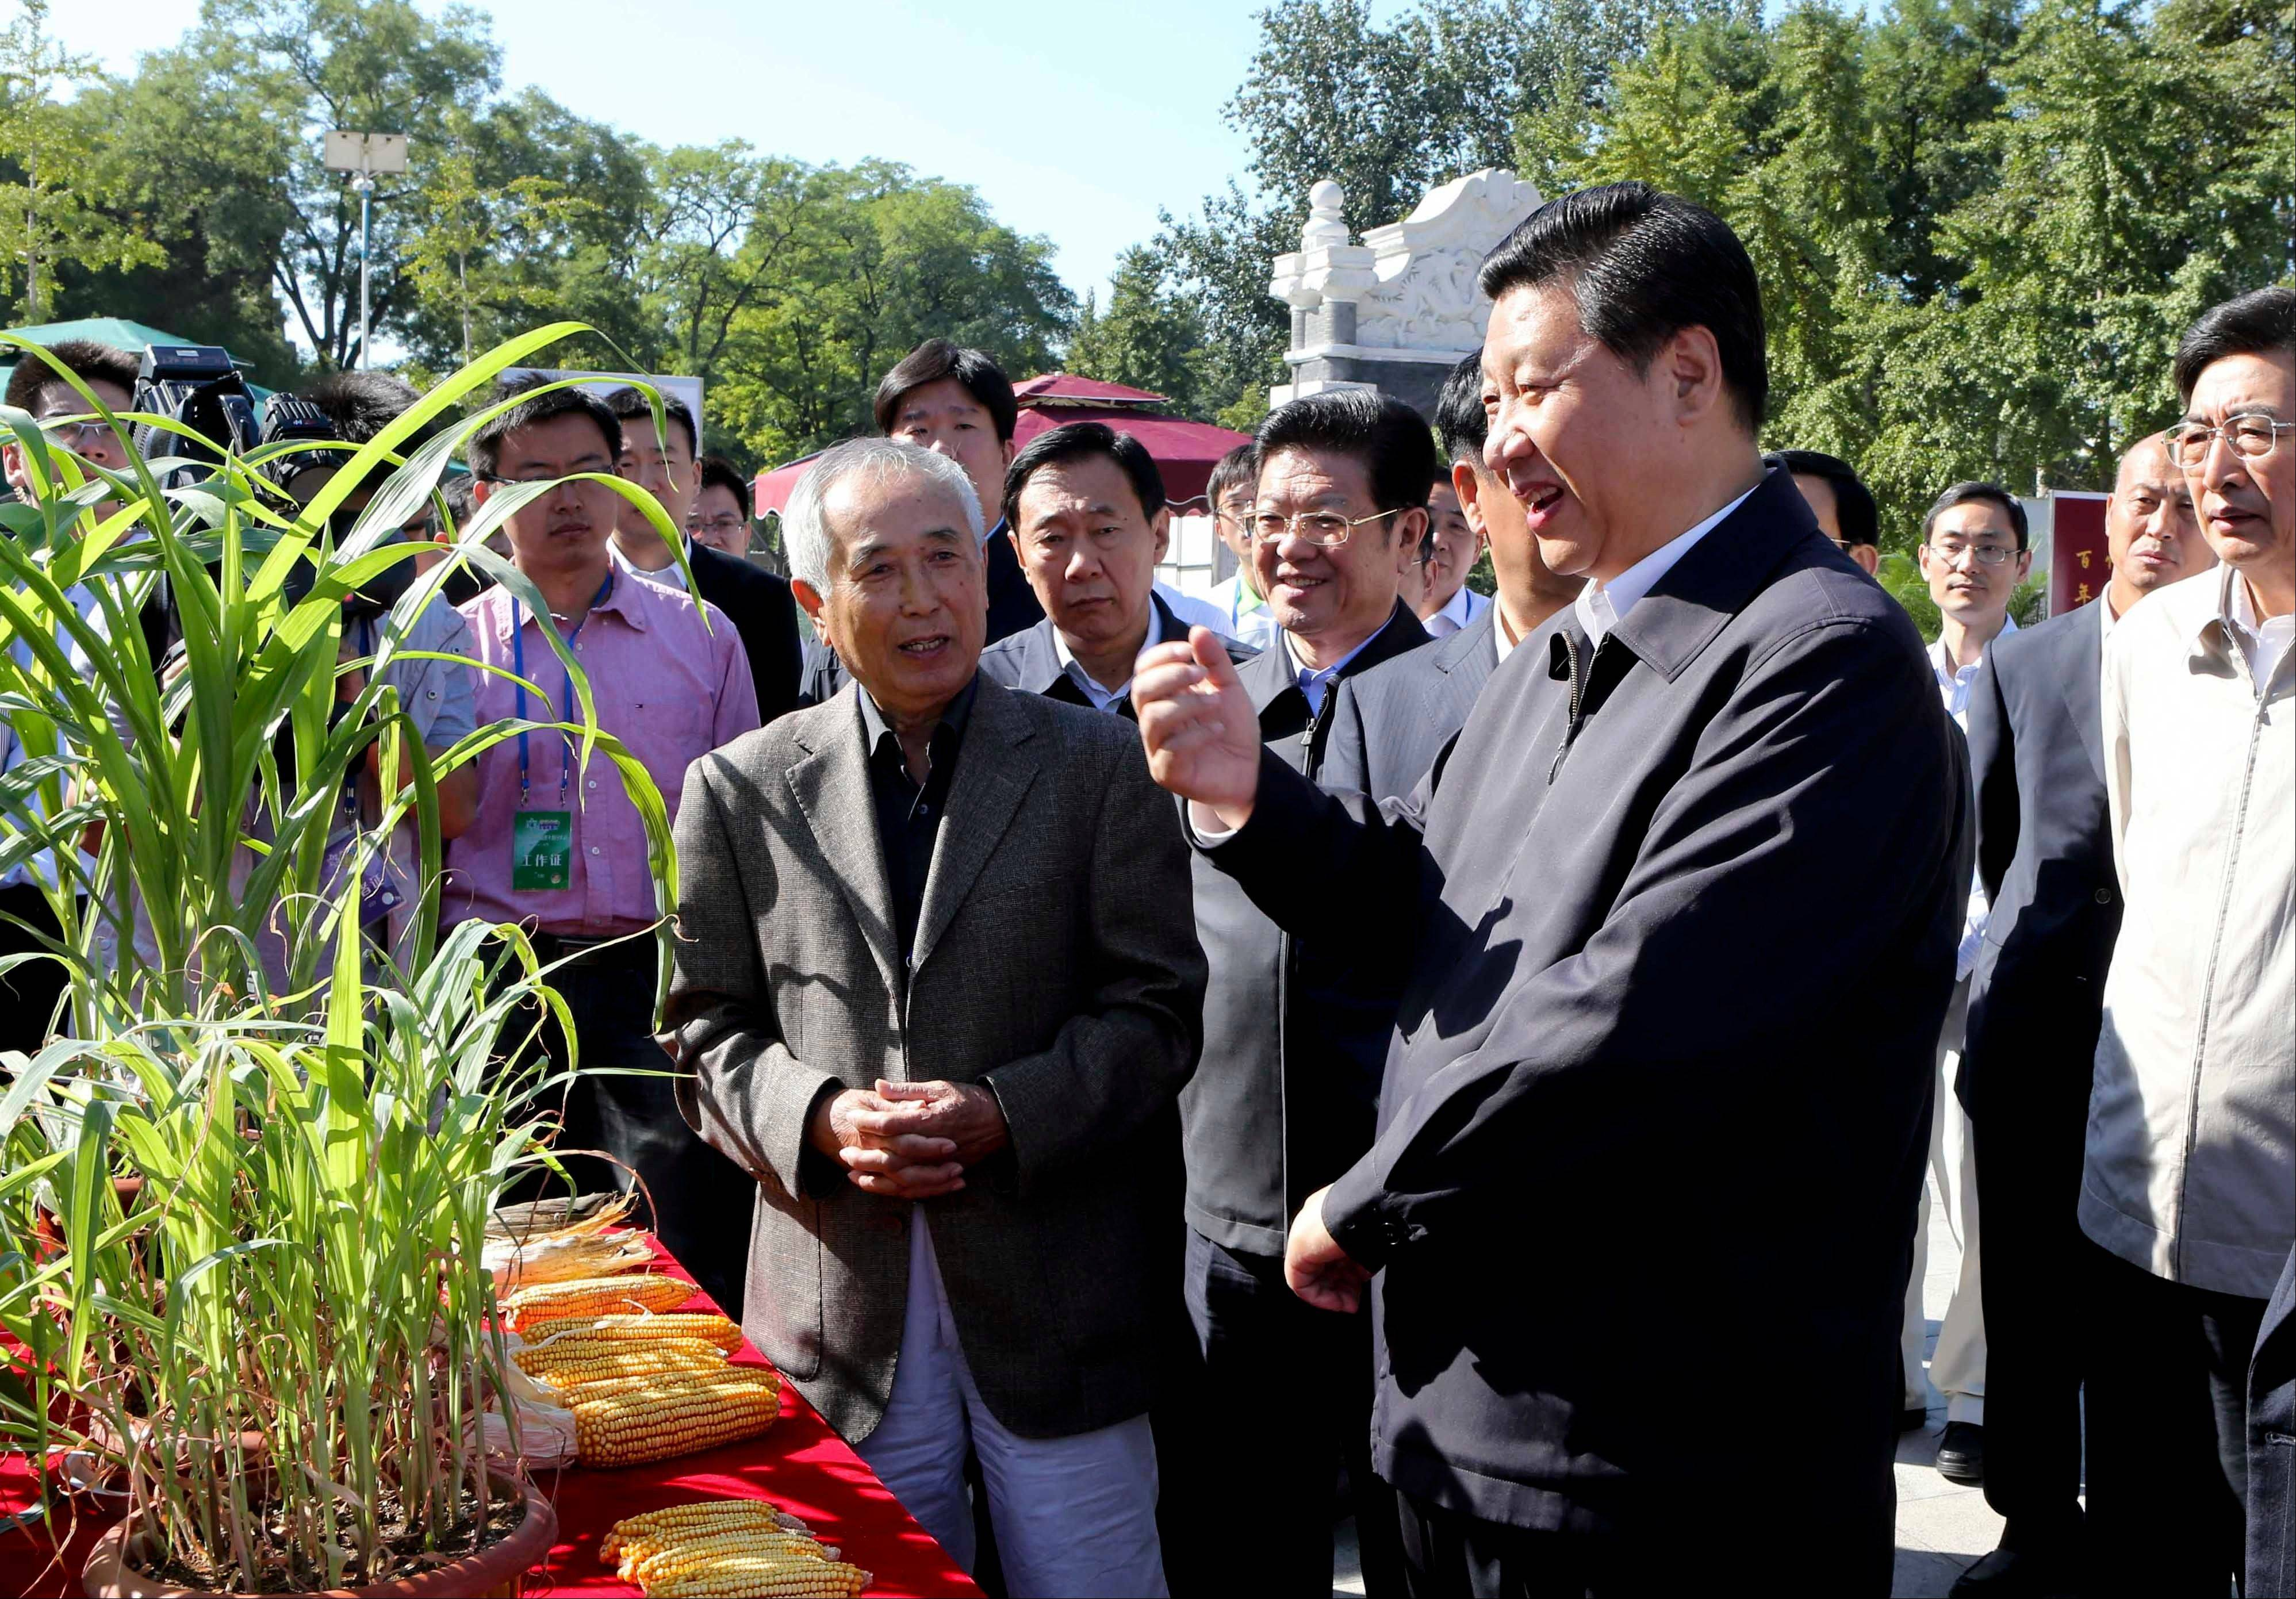 Associatewd P{ress/Courtesy of Xinhua News Agency Chinese Vice President Xi Jinping, front right, attends an activity Saturday to mark this year's National Science Popularization Day at China Agricultural University in Beijing.